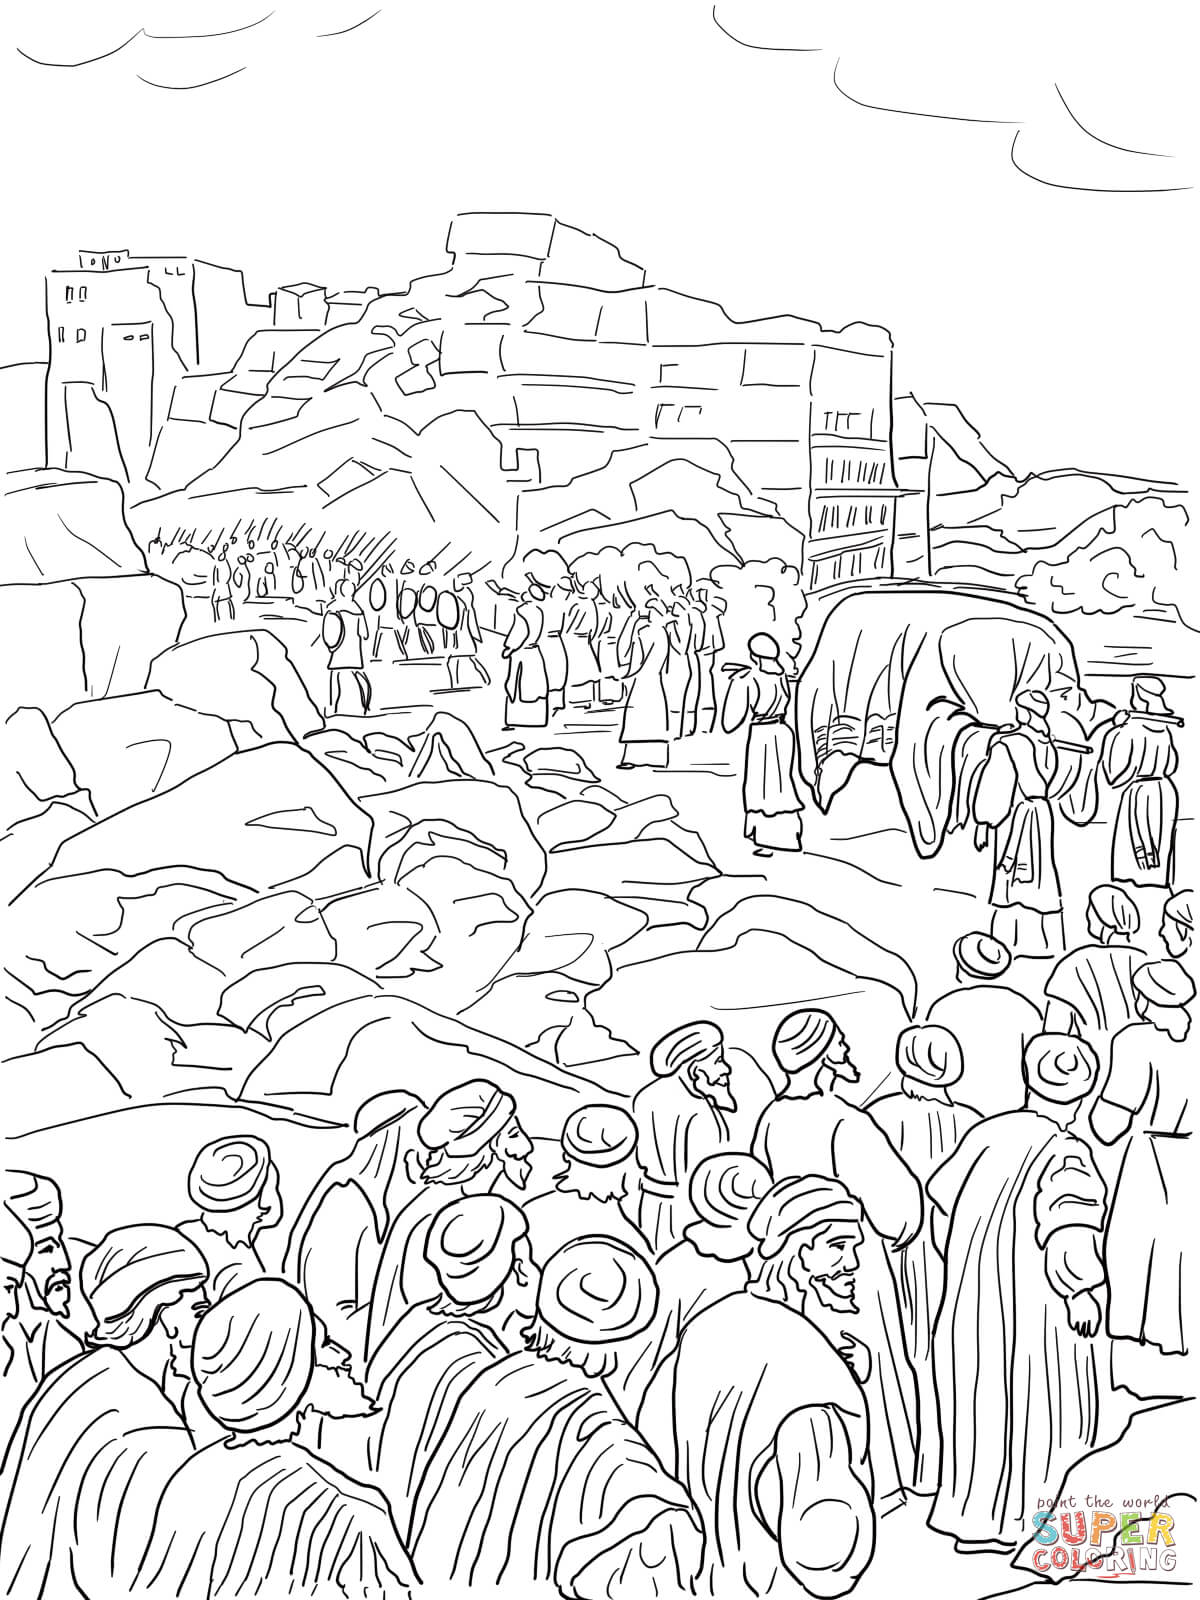 Joshua Capture Of Jericho Coloring Page